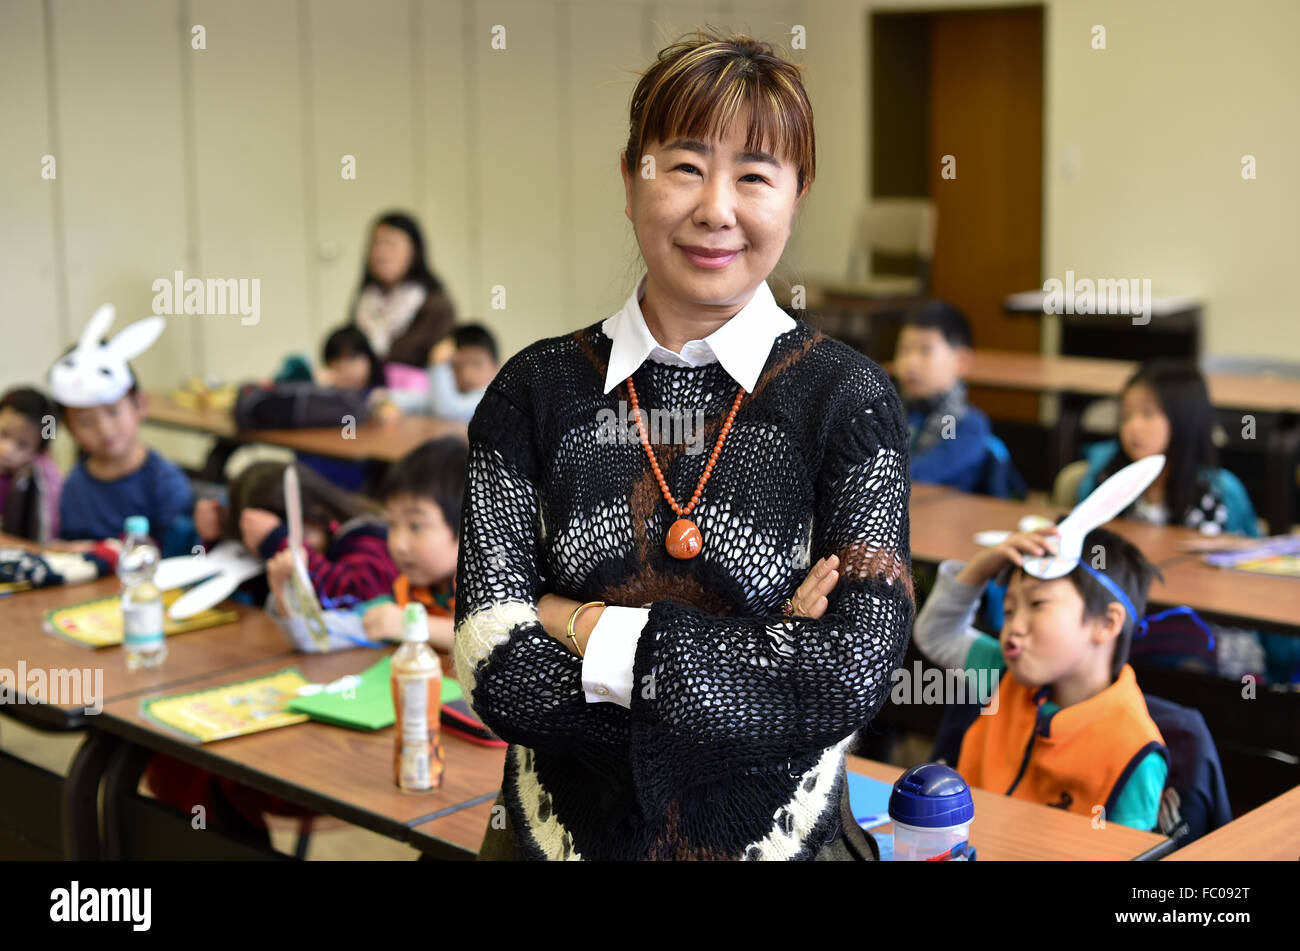 Oberursel, Germany. 22nd Nov, 2015. Junzi Yang, head of the International Chinese School, standing in a classroom - Stock Image